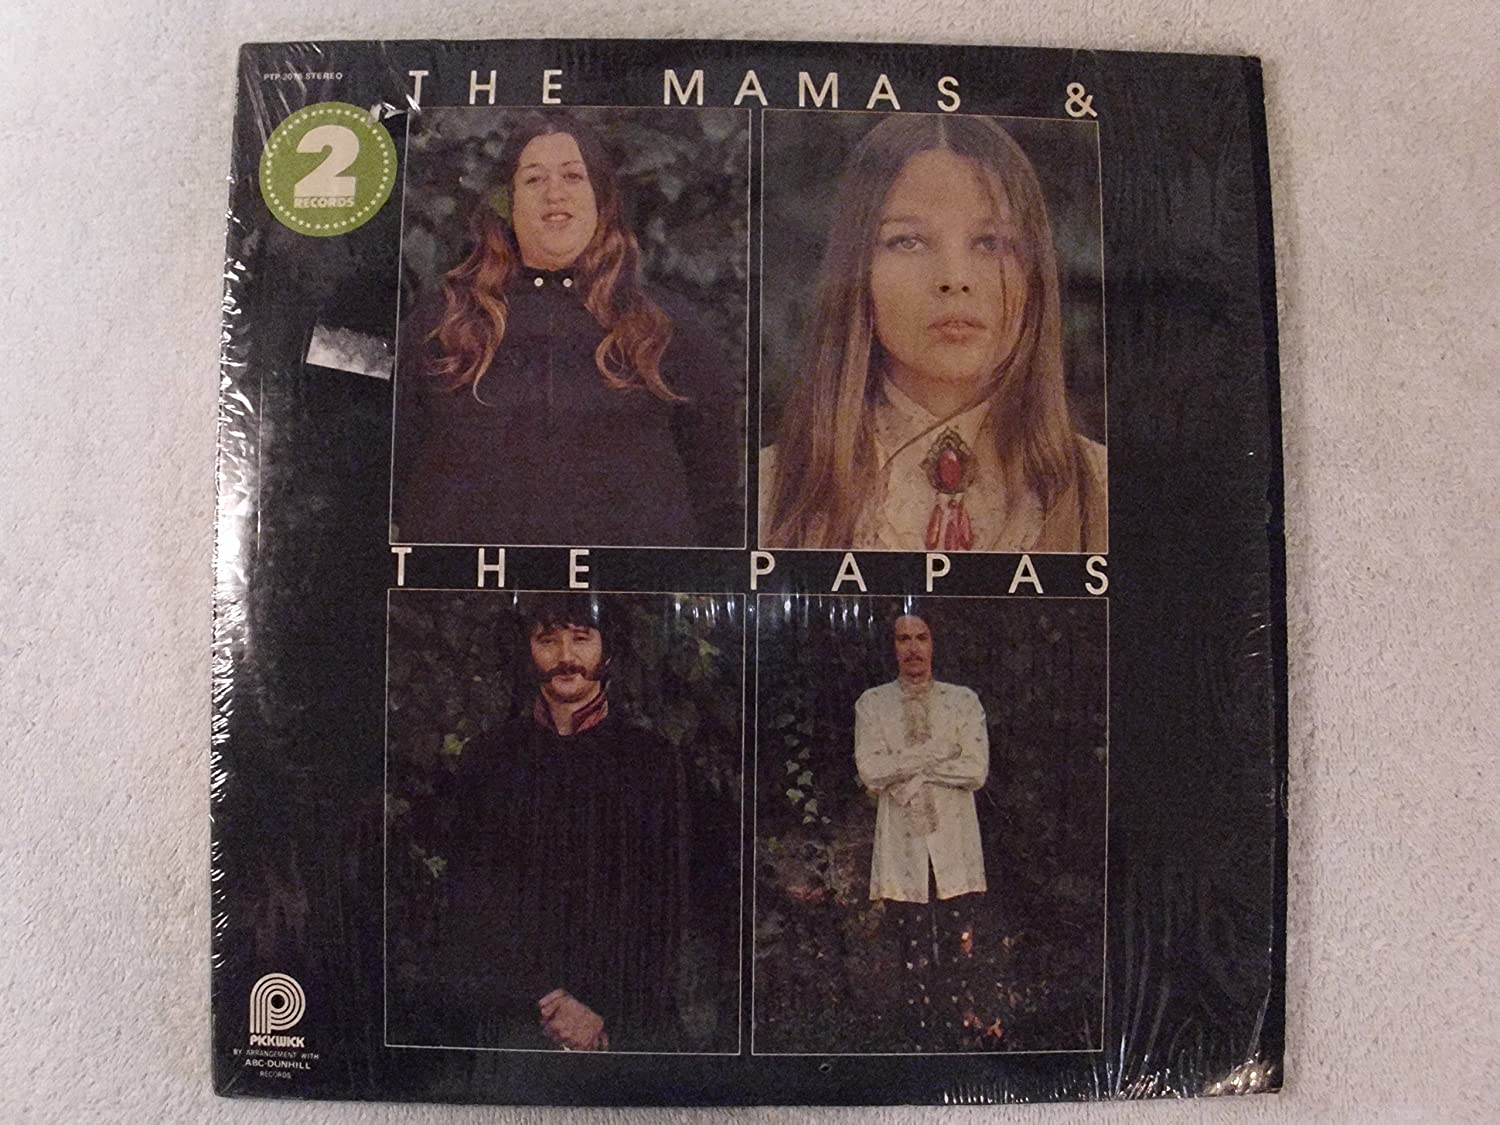 Two Records Of The Mamas' & Papas' Greatest Hits LP